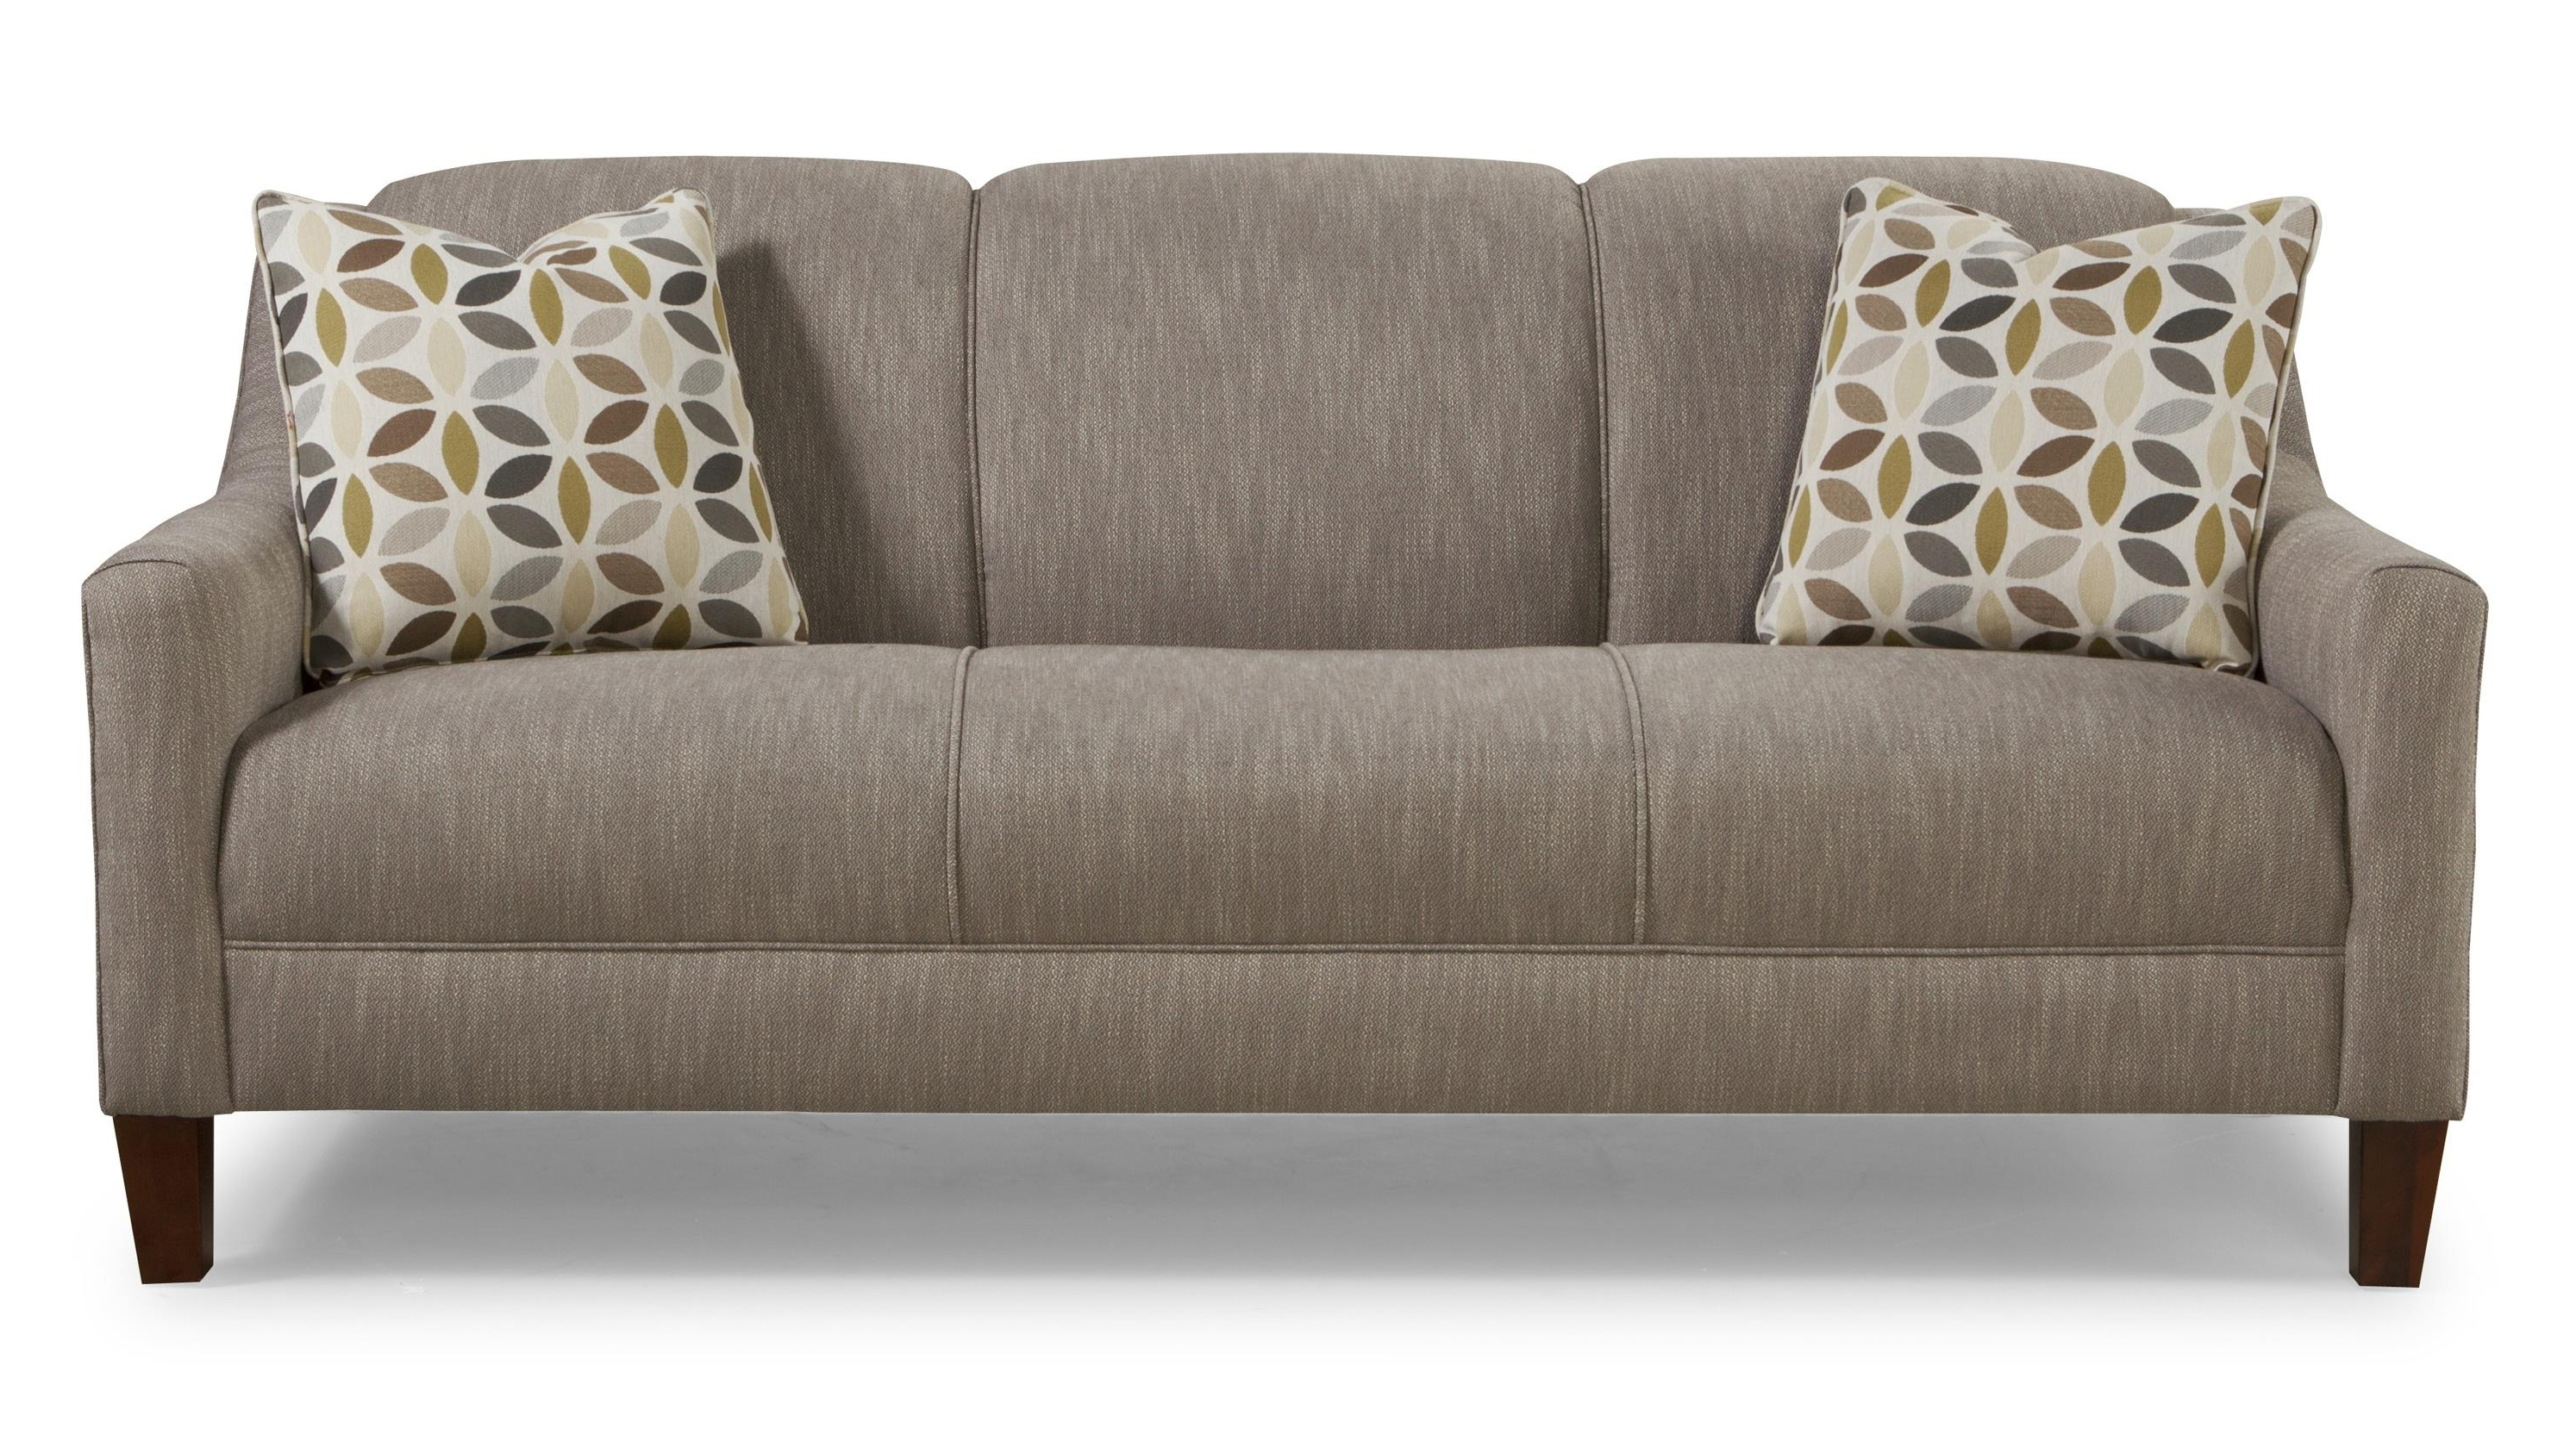 Apartment Size Sofas Regarding Newest Sofa: Stylish Apartment Size Sofas Small Sectionals, Sofas Under (View 5 of 20)